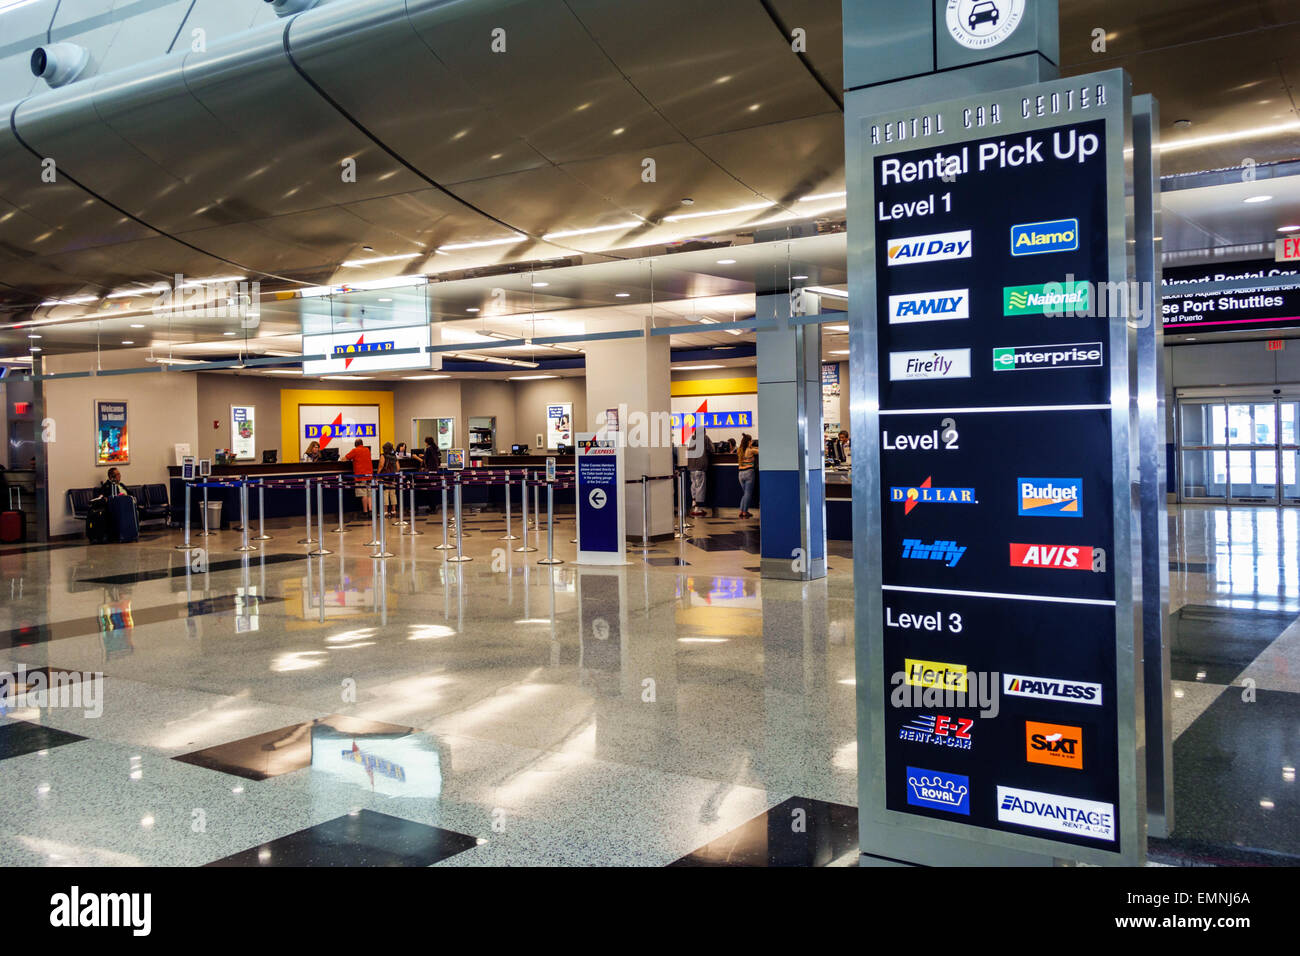 miamimiami florida international airport mia rental car center centre stock photo 81609874 alamy. Black Bedroom Furniture Sets. Home Design Ideas